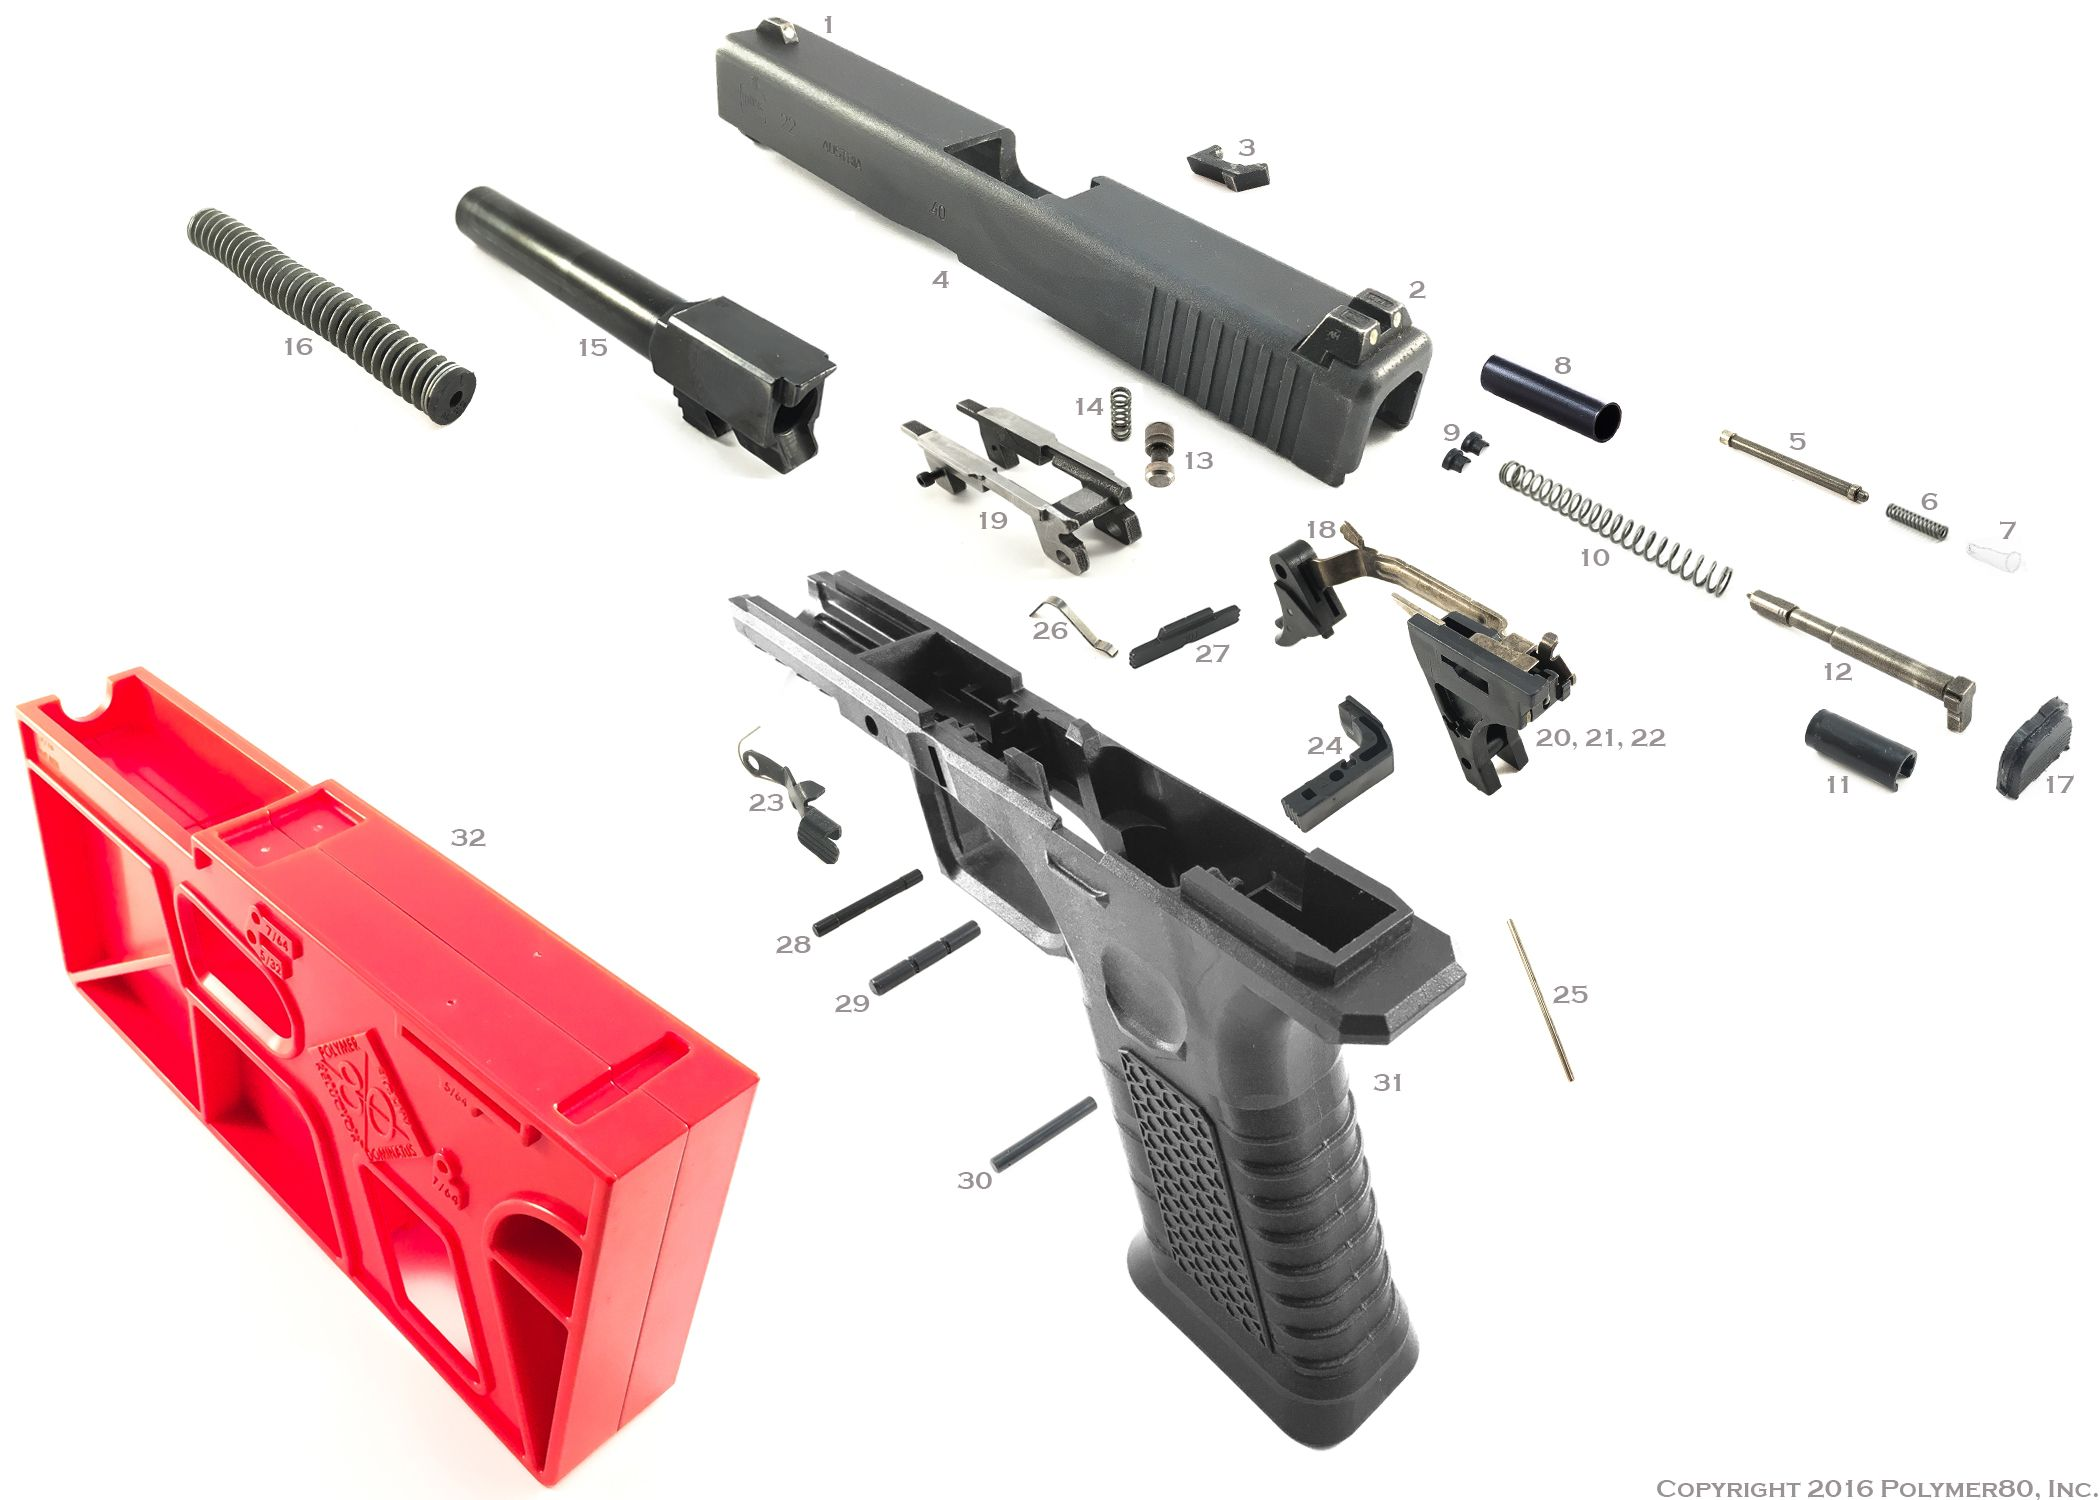 Polymer 80 glock 80 pistol kit includes jig tools ez to build polymer 80 glock 80 pistol kit includes jig tools ez to build super hot fandeluxe Choice Image